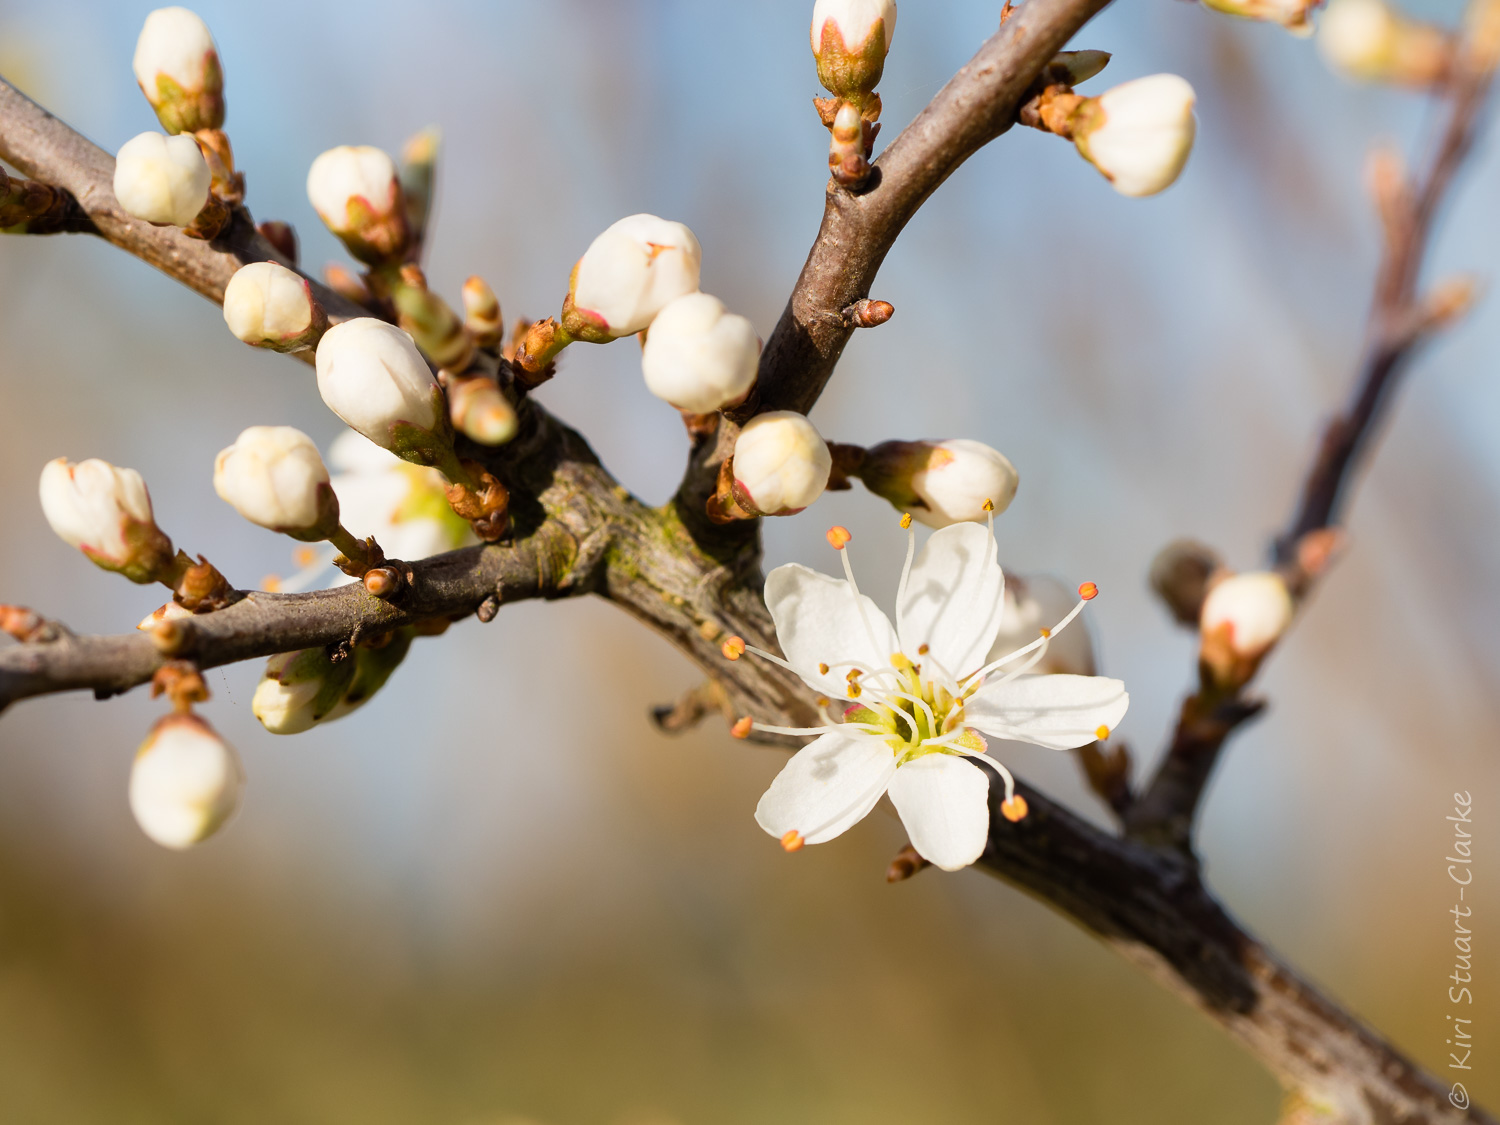 Blackthorn blossom and buds